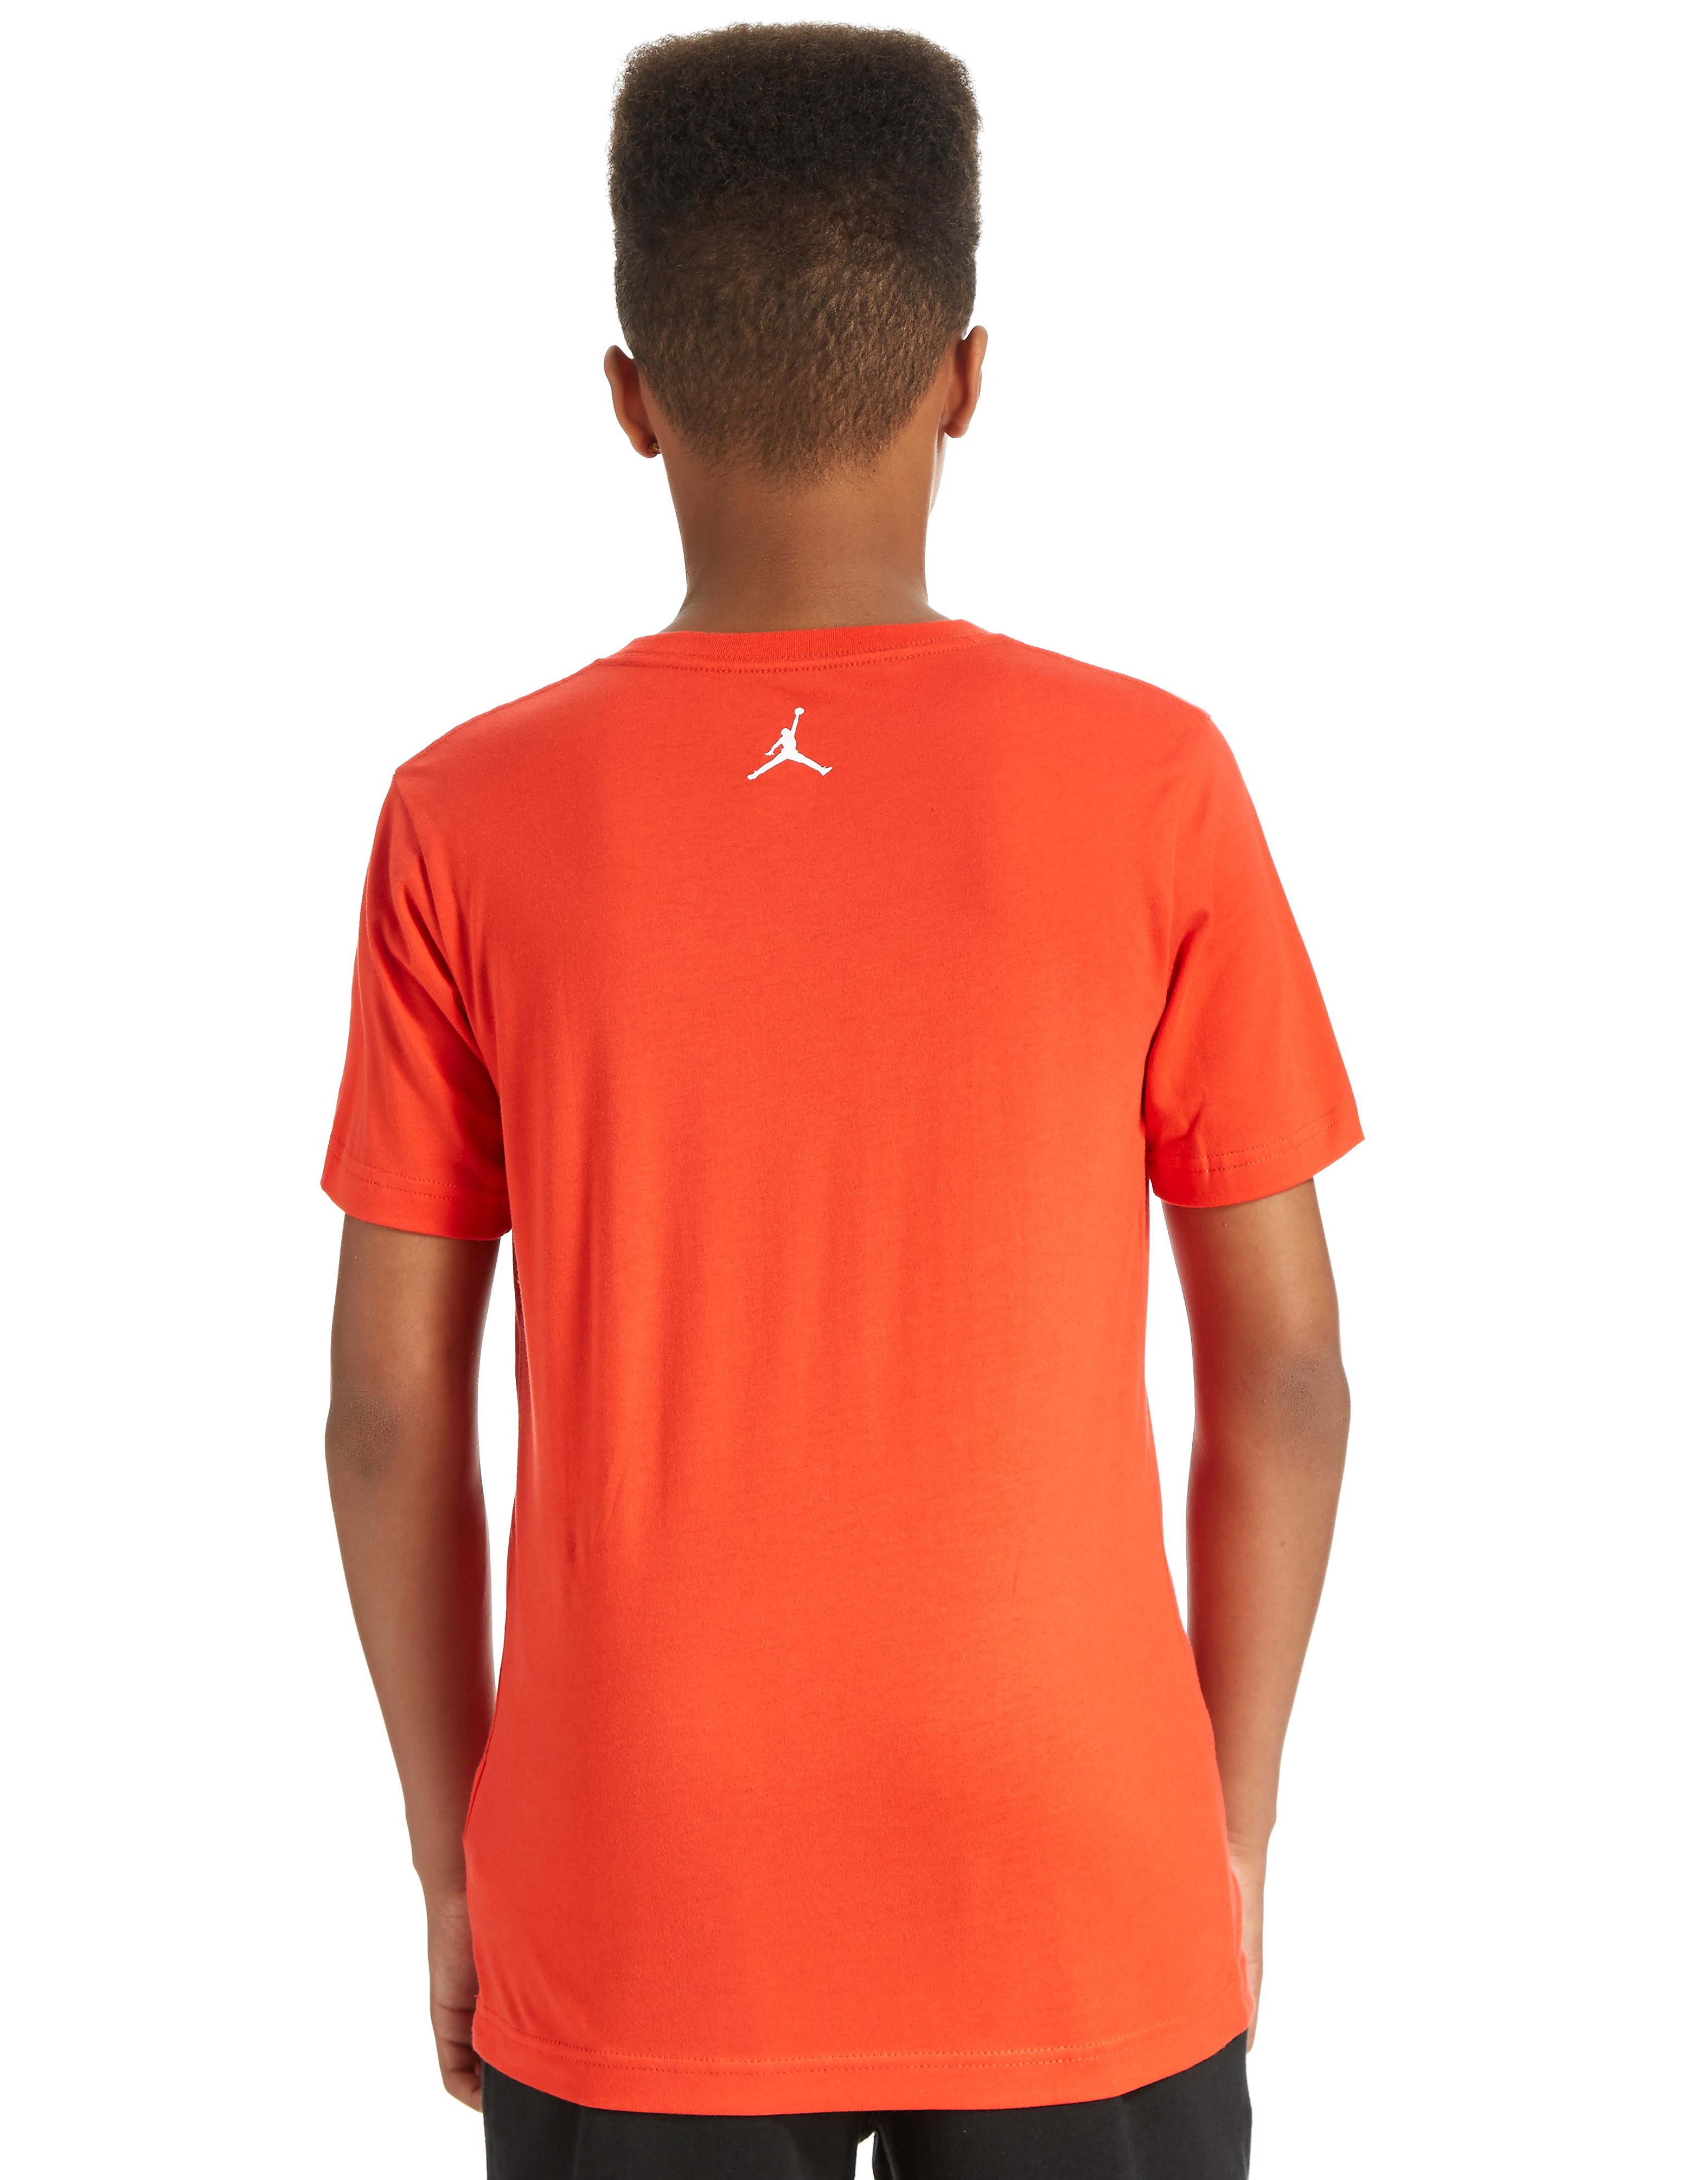 Jordan Air Jordan Dream T-Shirt Junior